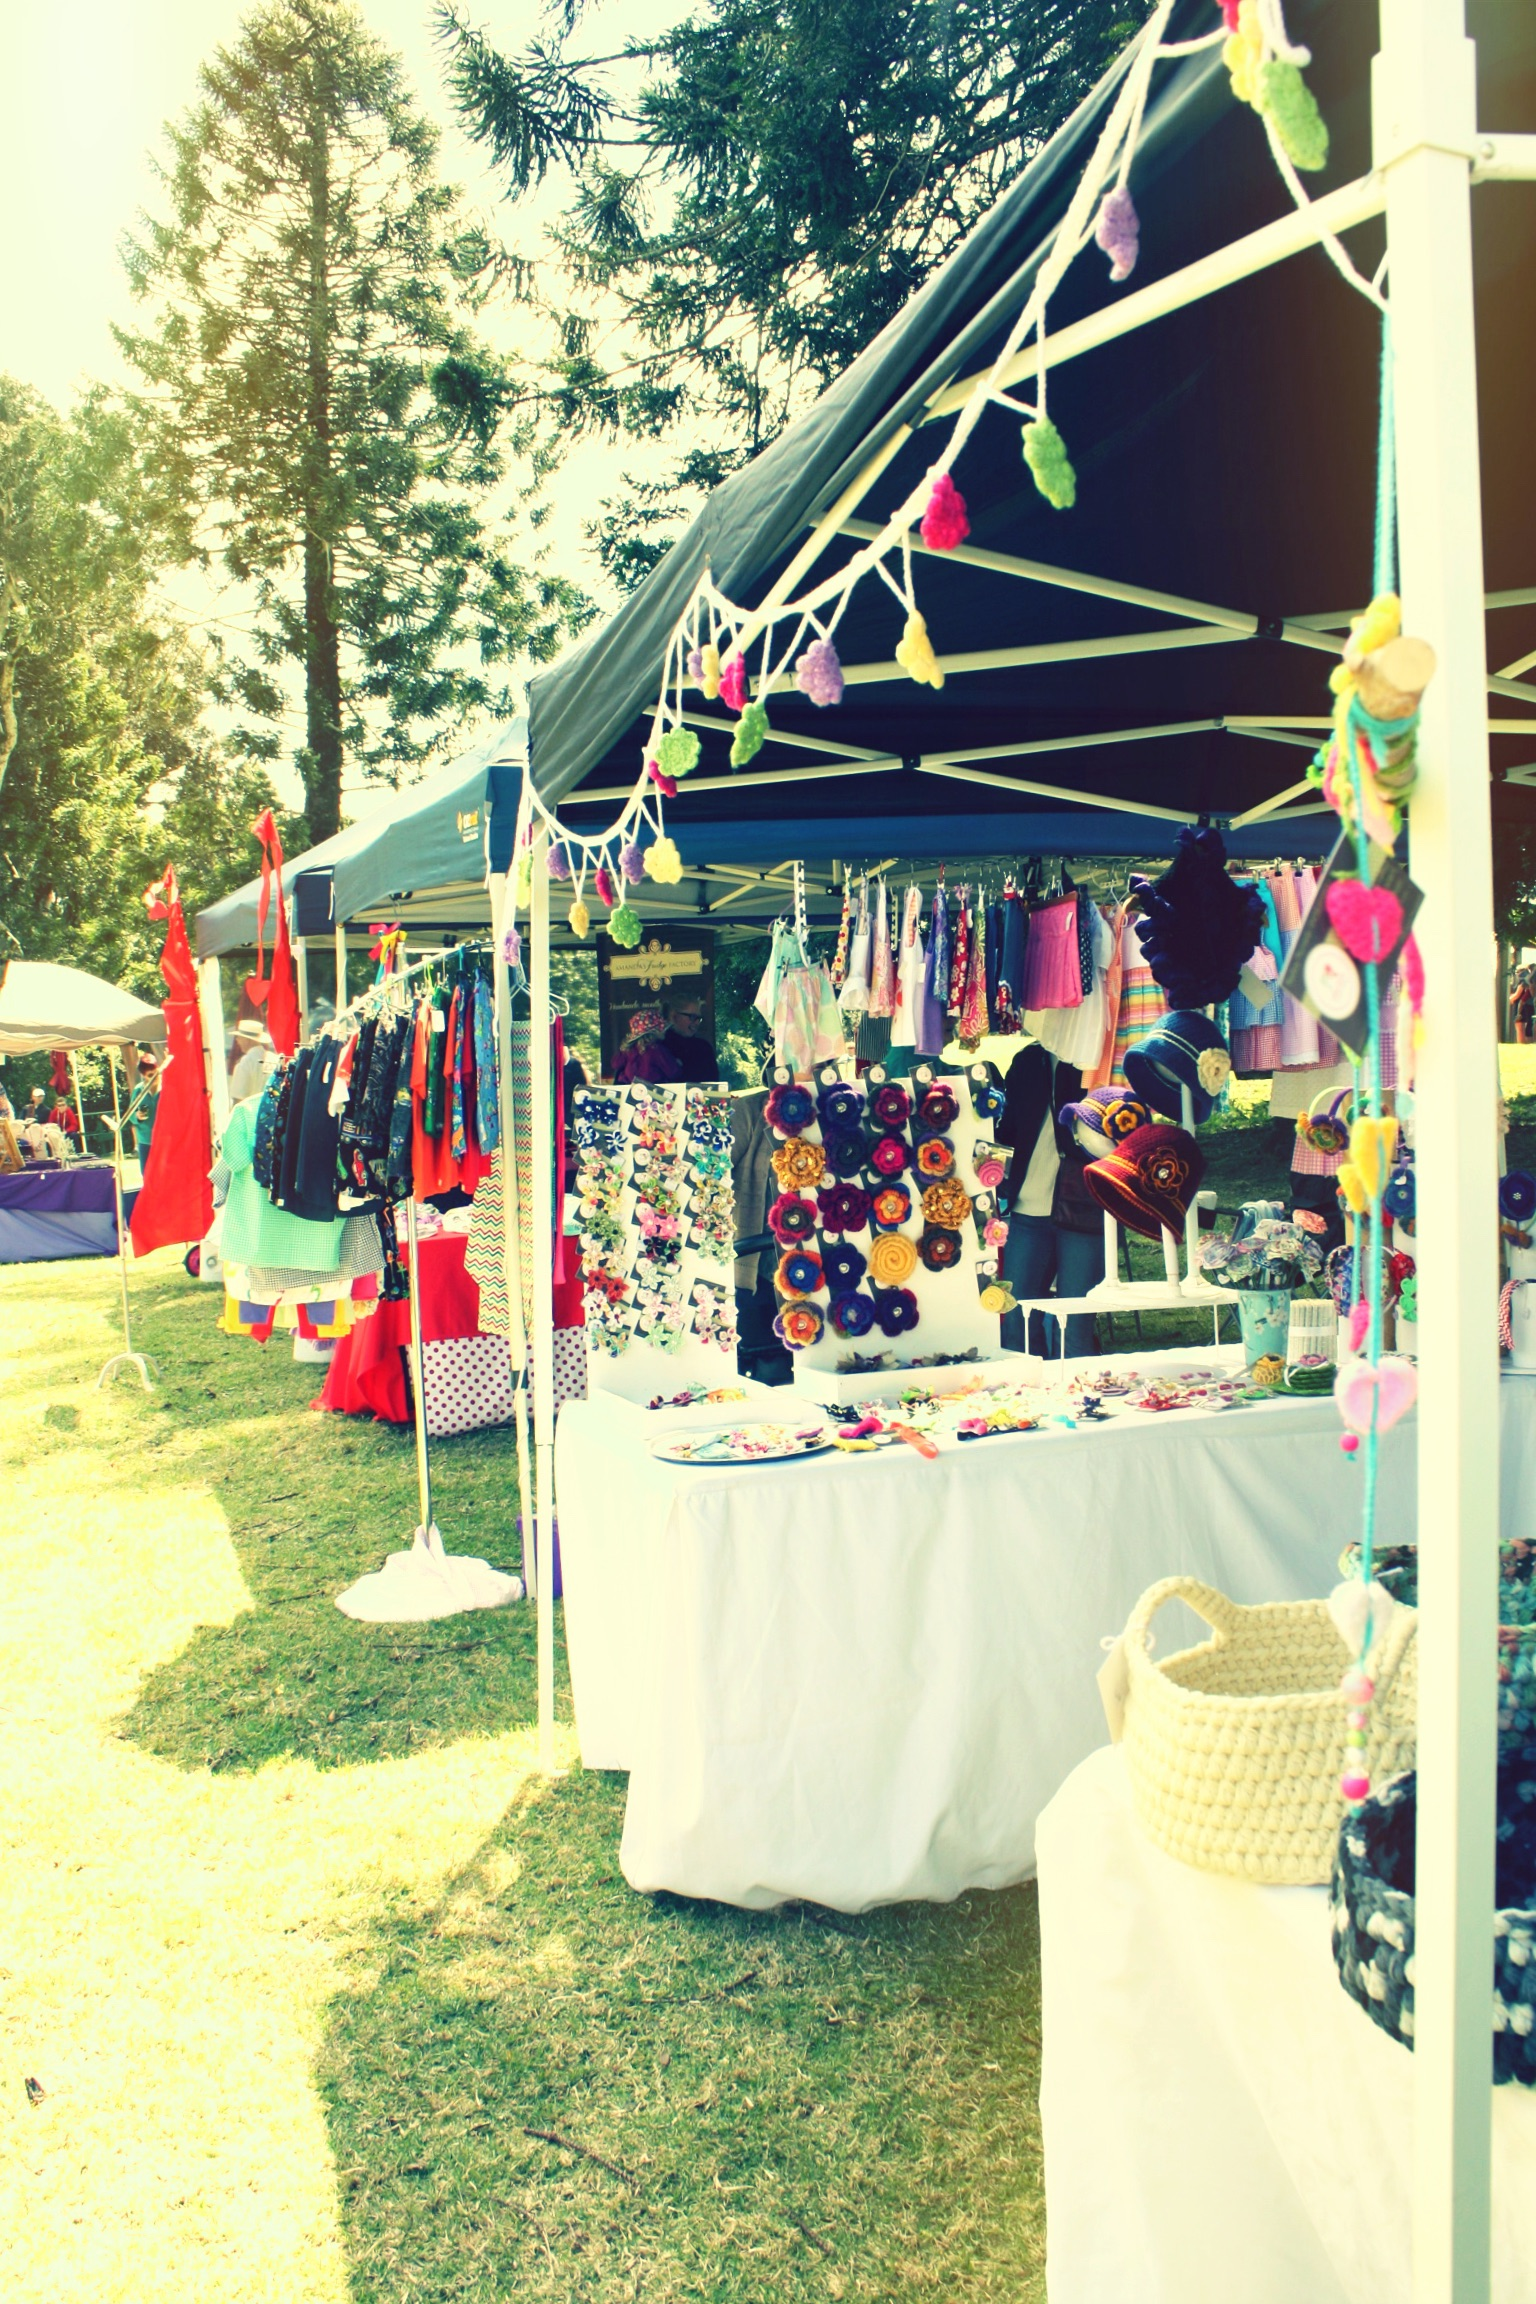 Sunday Bunya Markets